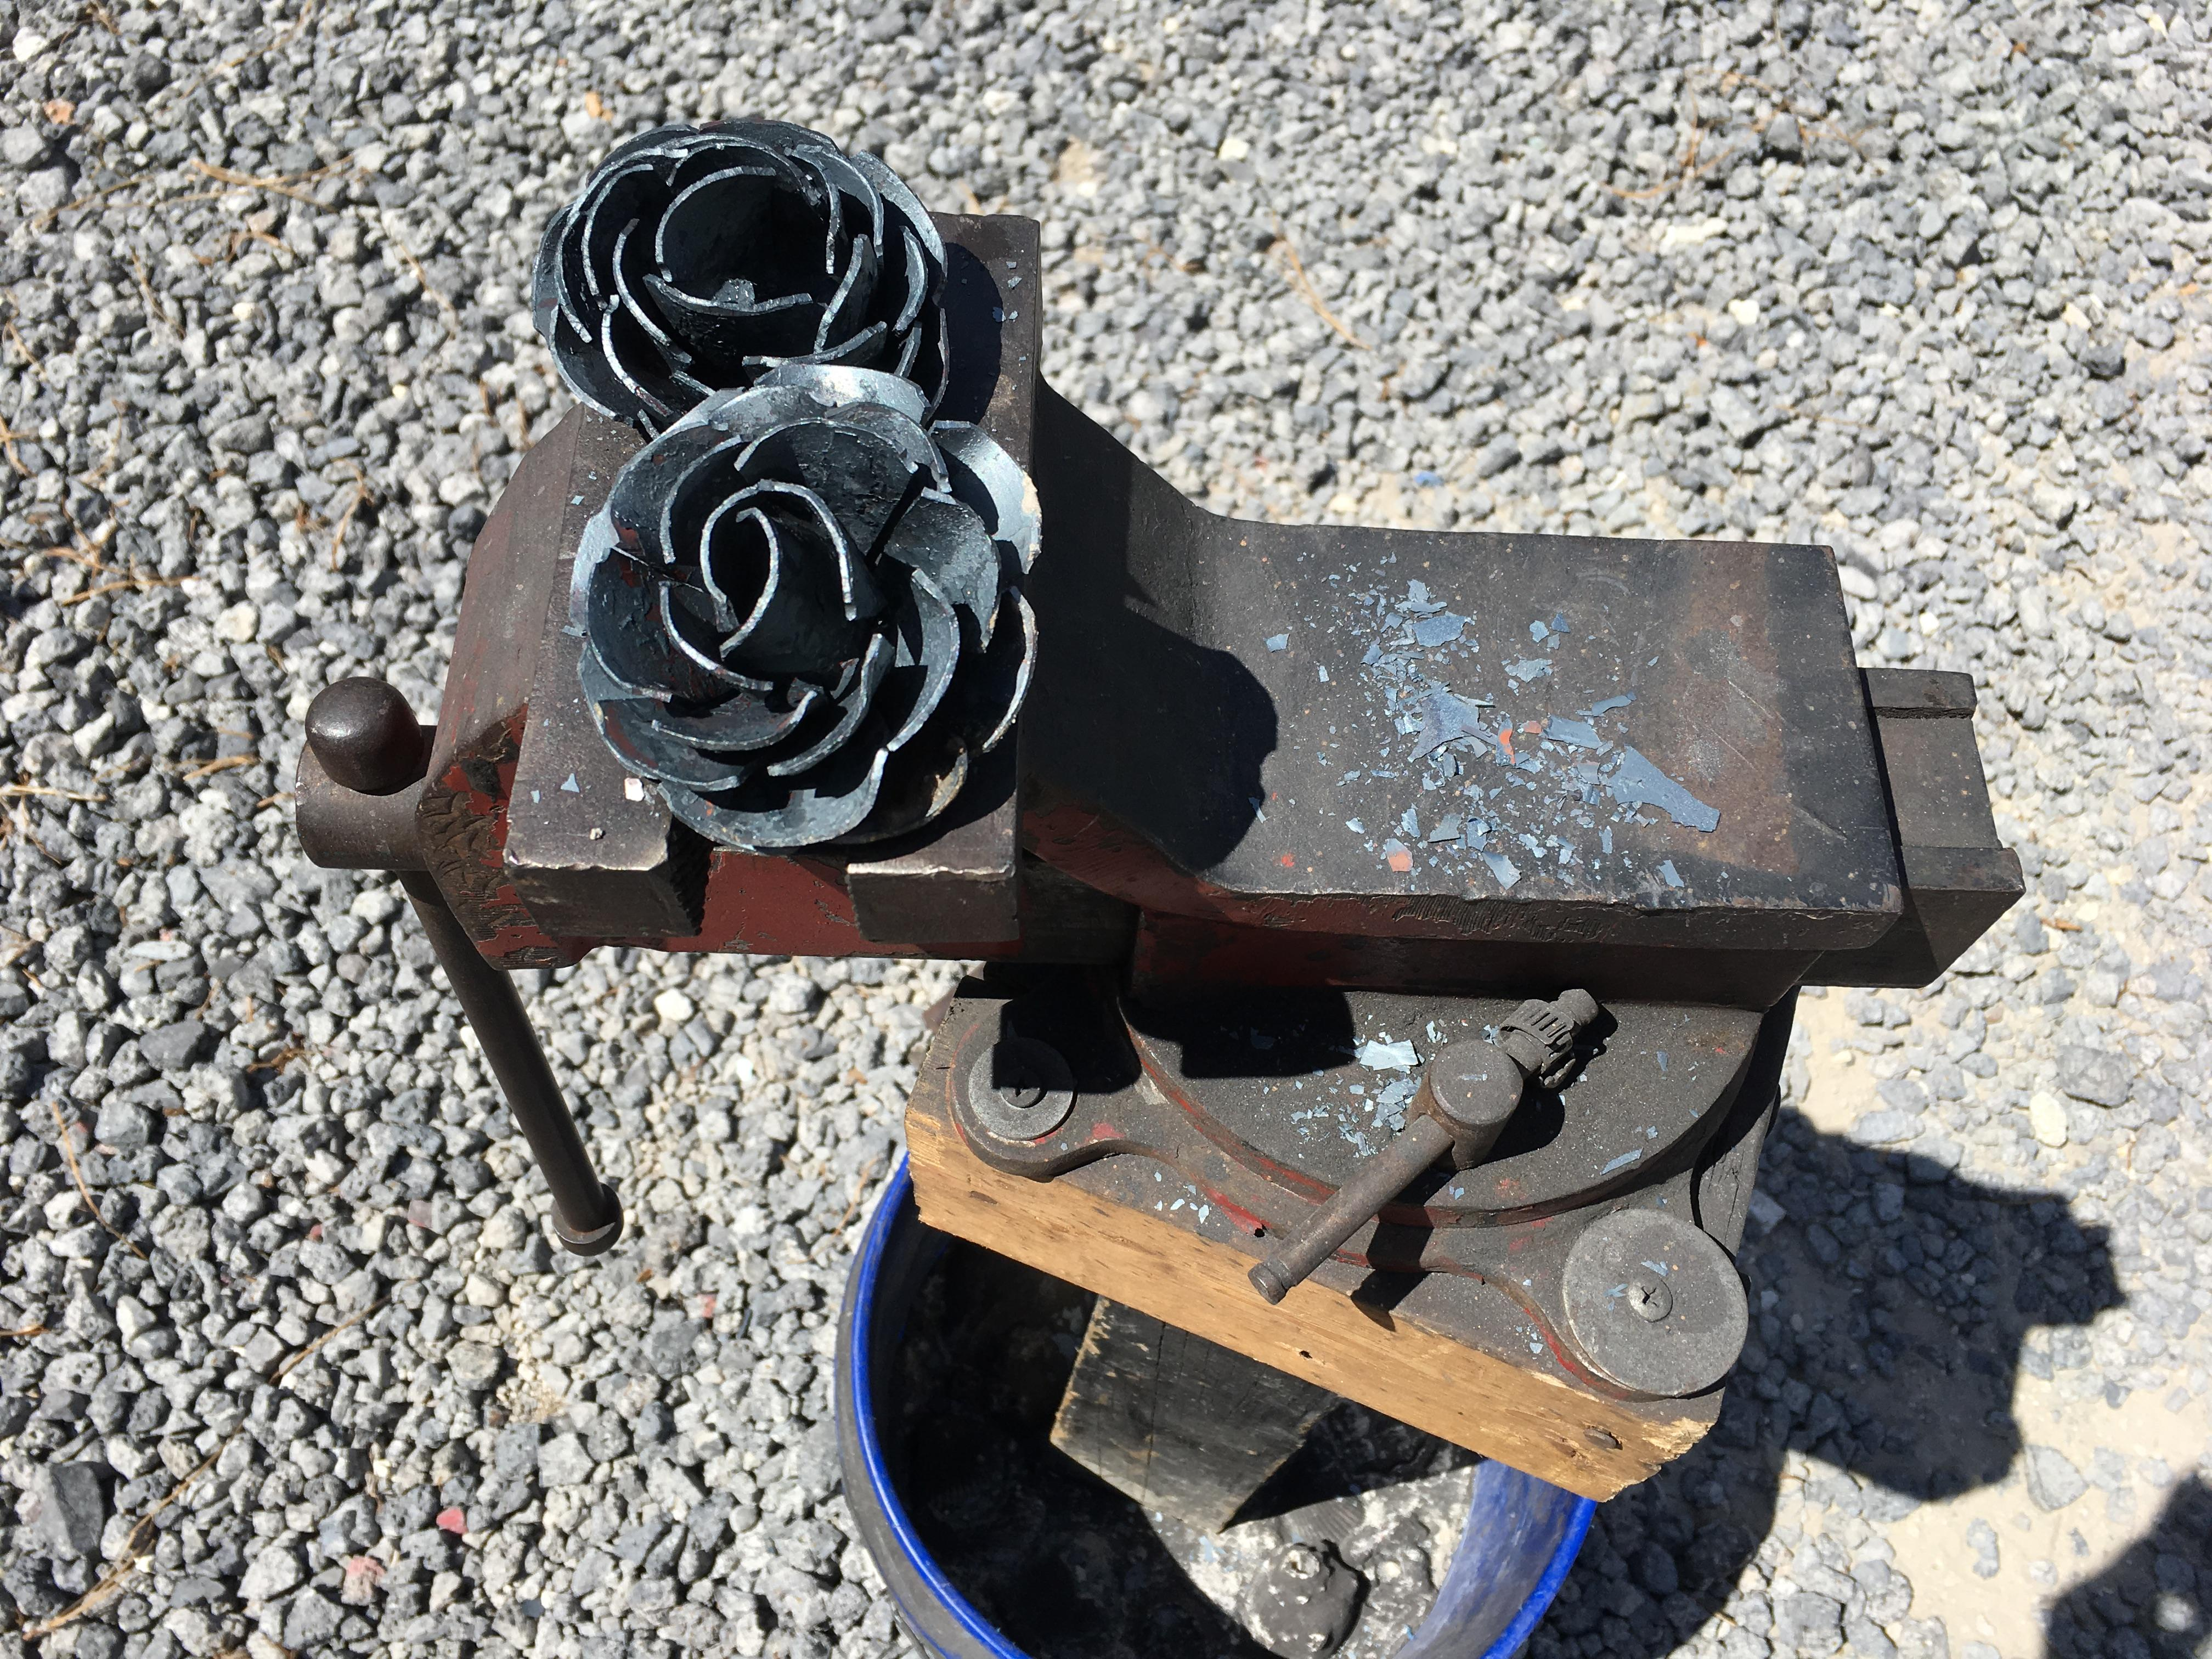 Finished roses from the blacksmith class with Pirate's Forge (Photo by Lani Furbank)